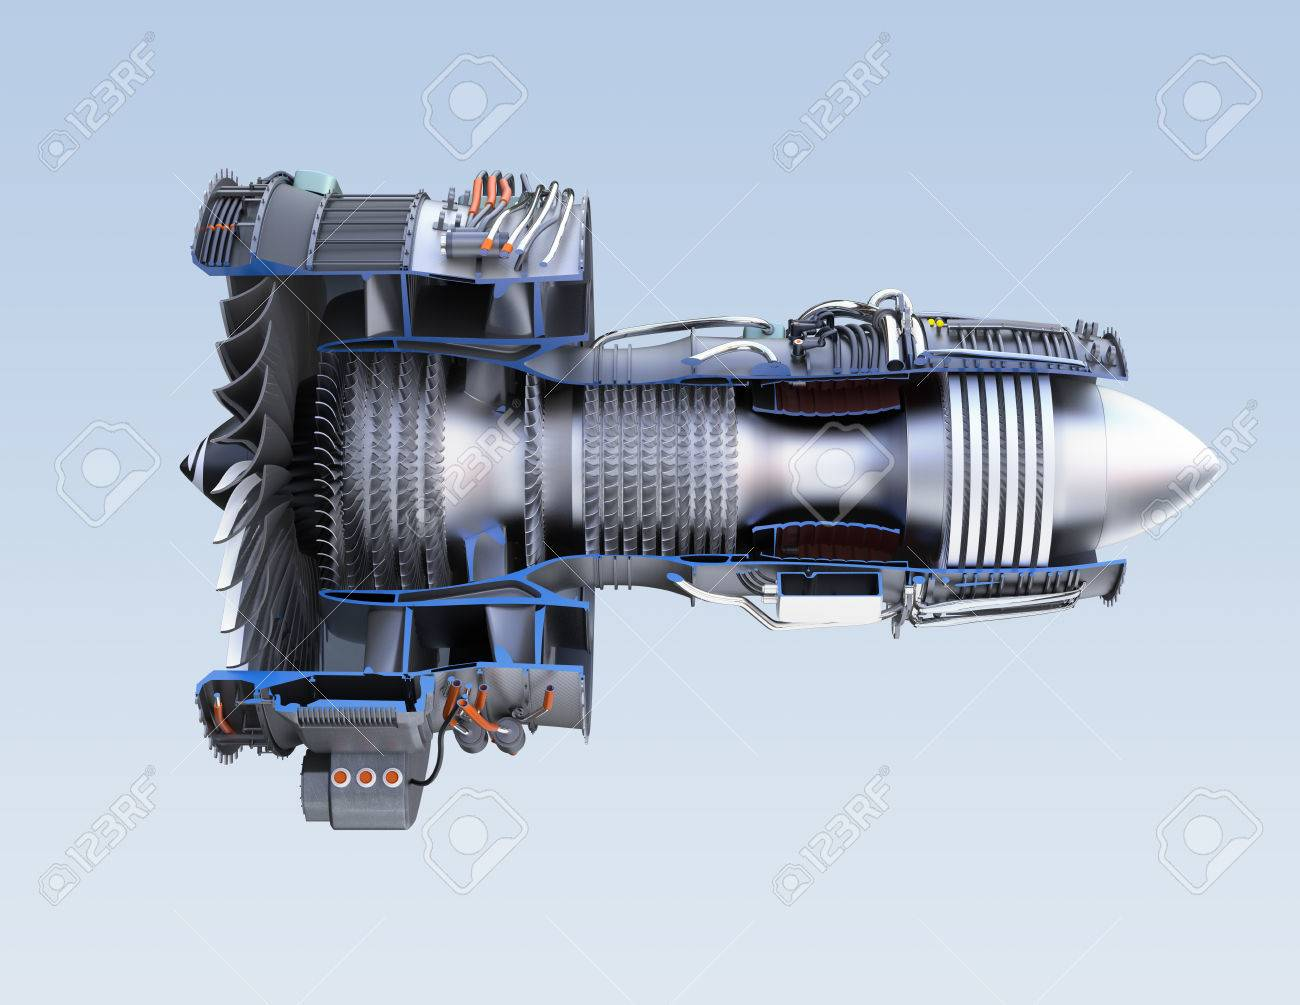 Cross section of turbofan jet engine isolated on light blue background